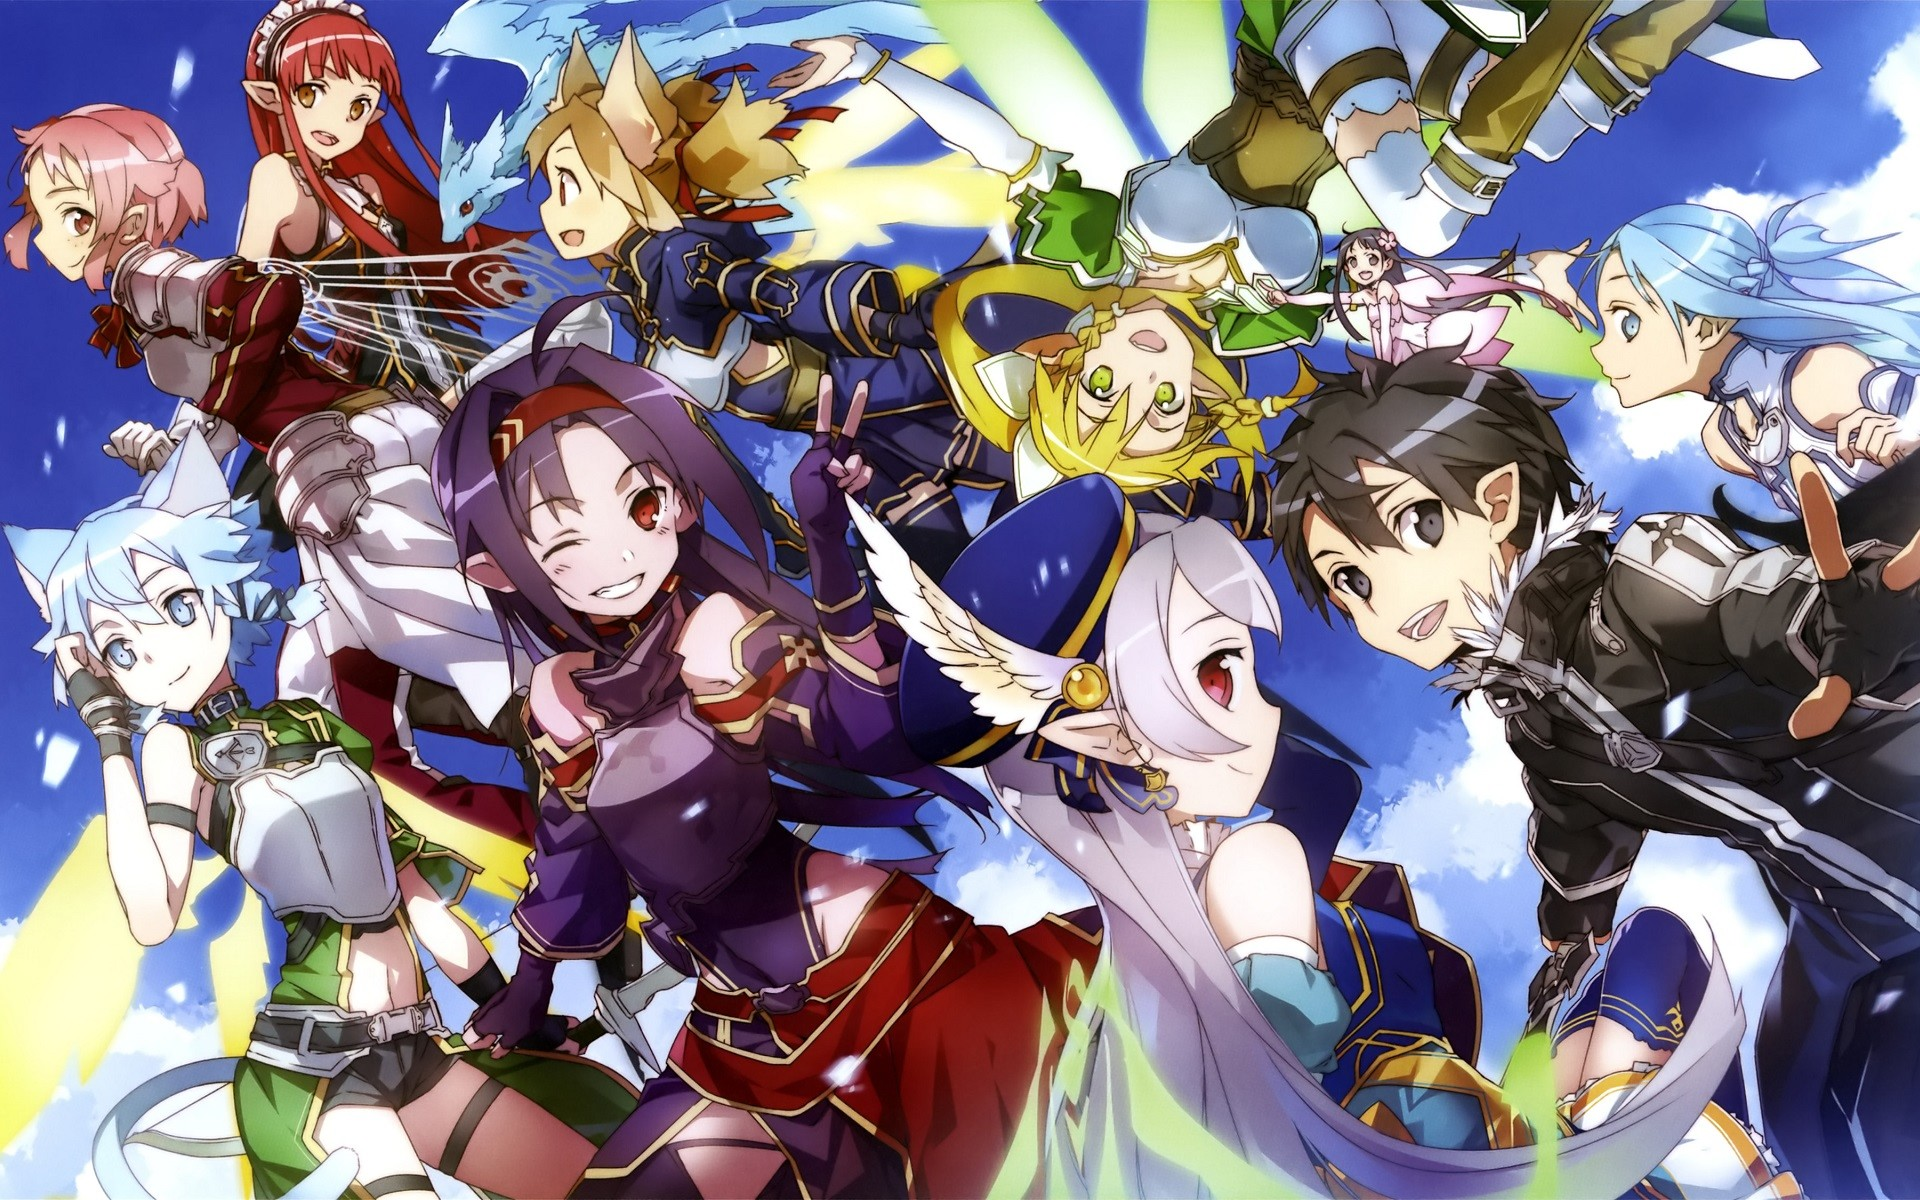 [Image] Lost Song Wallpaper I shooped for you guys without watermarks,  enjoy!